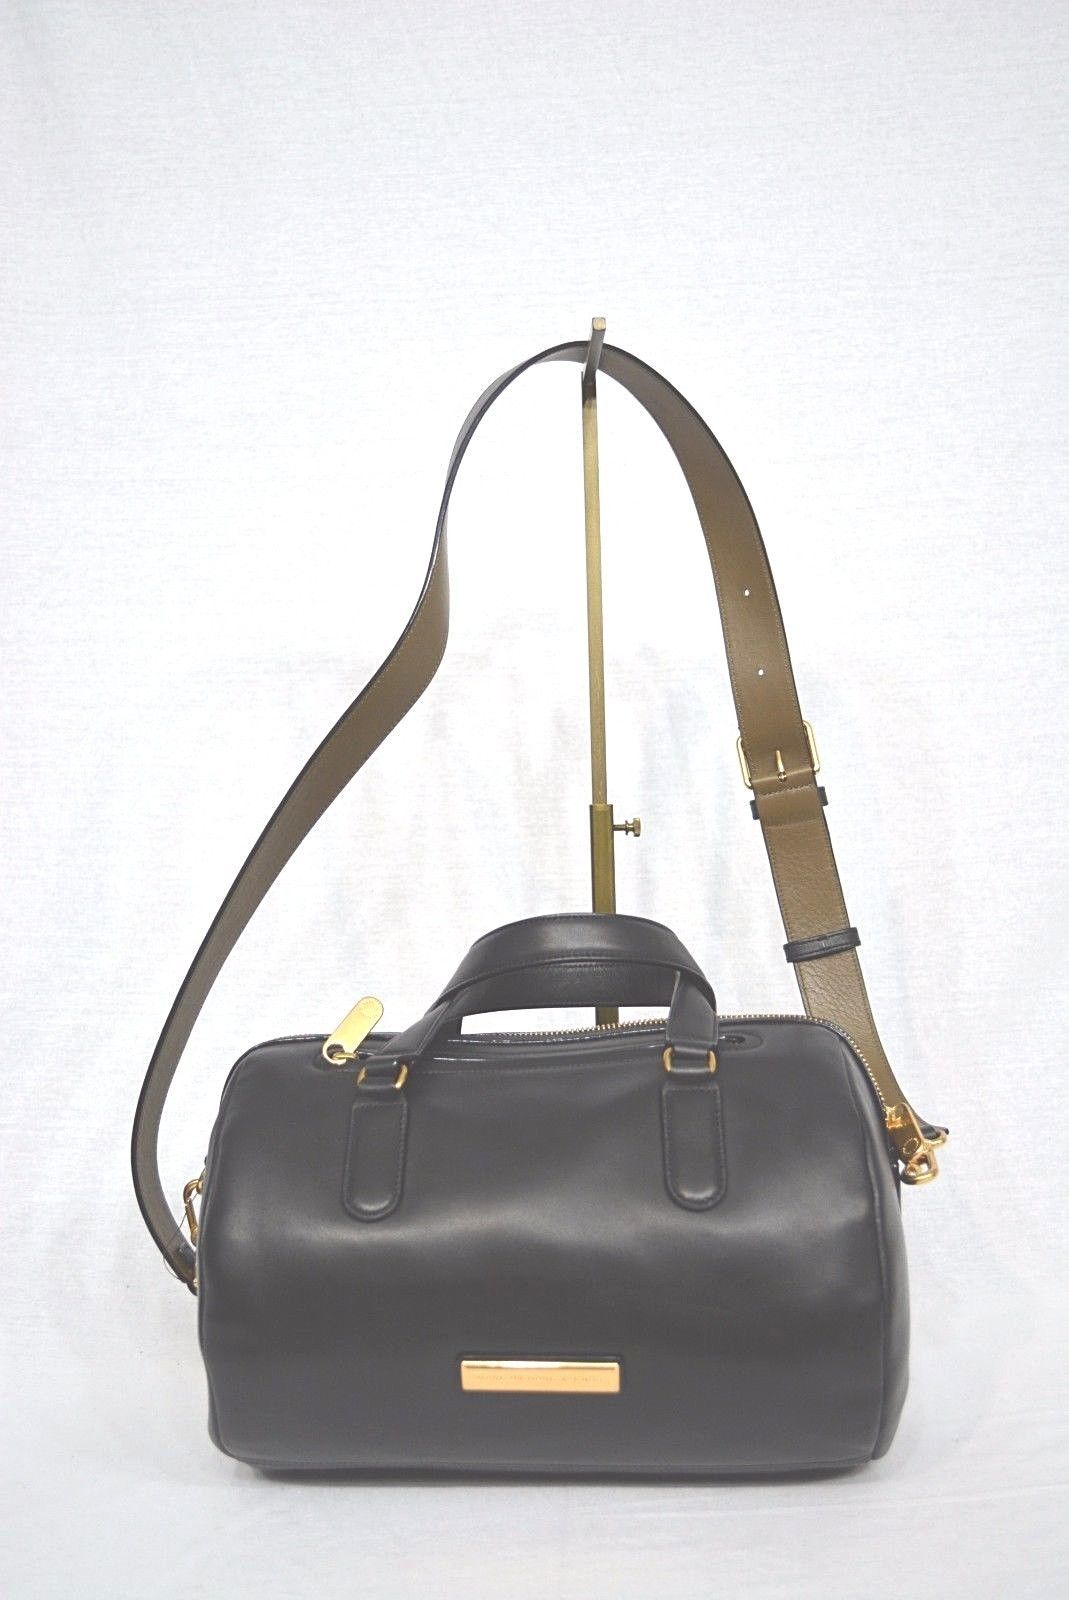 Primary image for NWD! Marc By Marc Jacobs M0004363 Luna Satchel/Shoulder Bag in Black Color $458